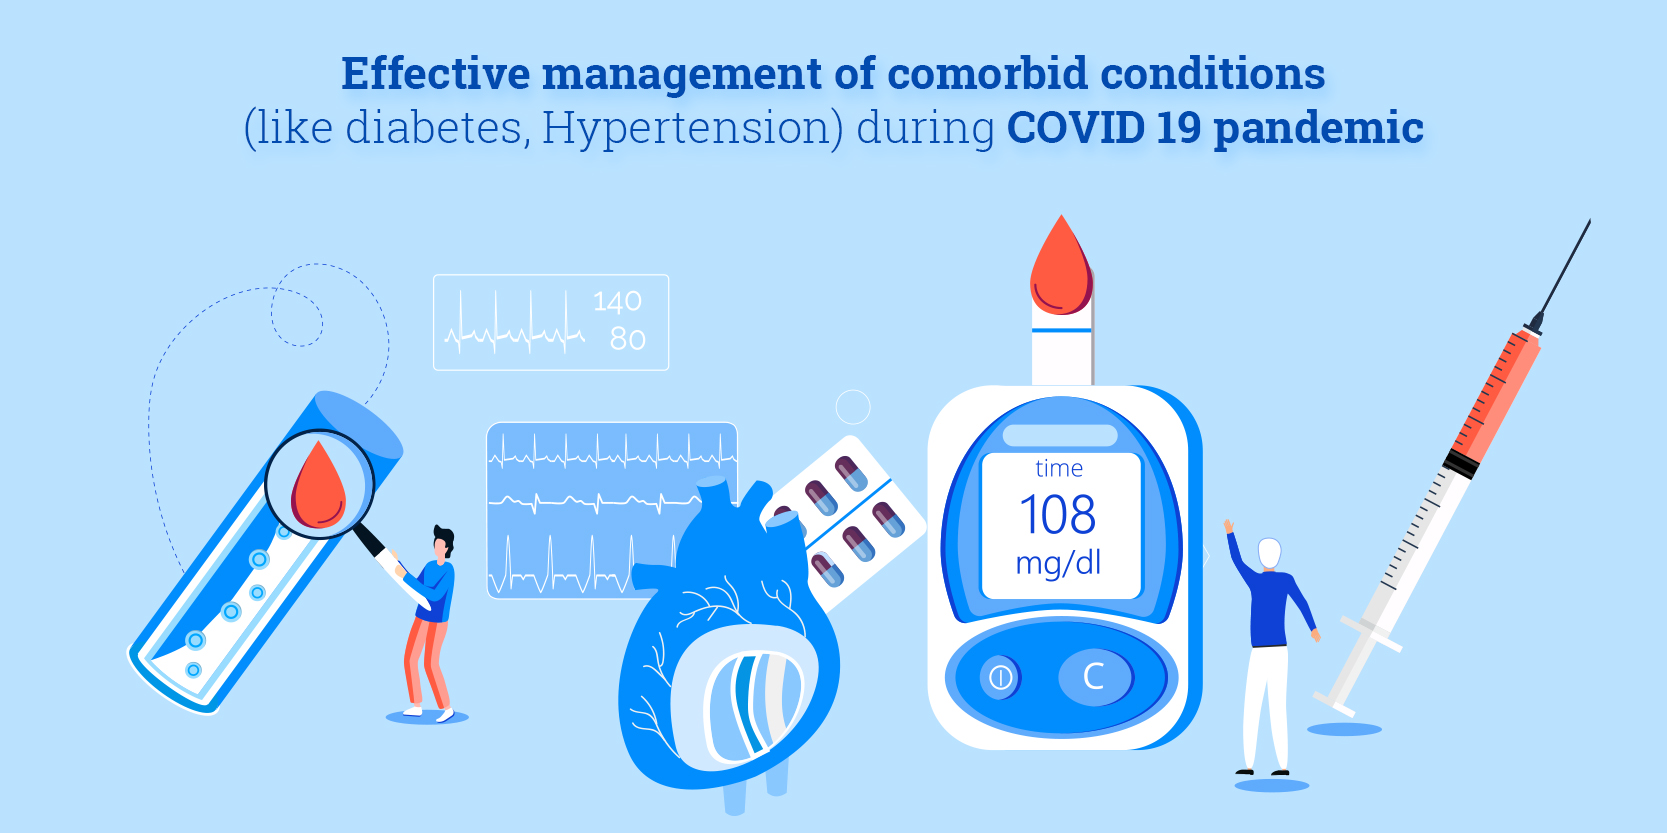 Managing comorbidities during COVID 19